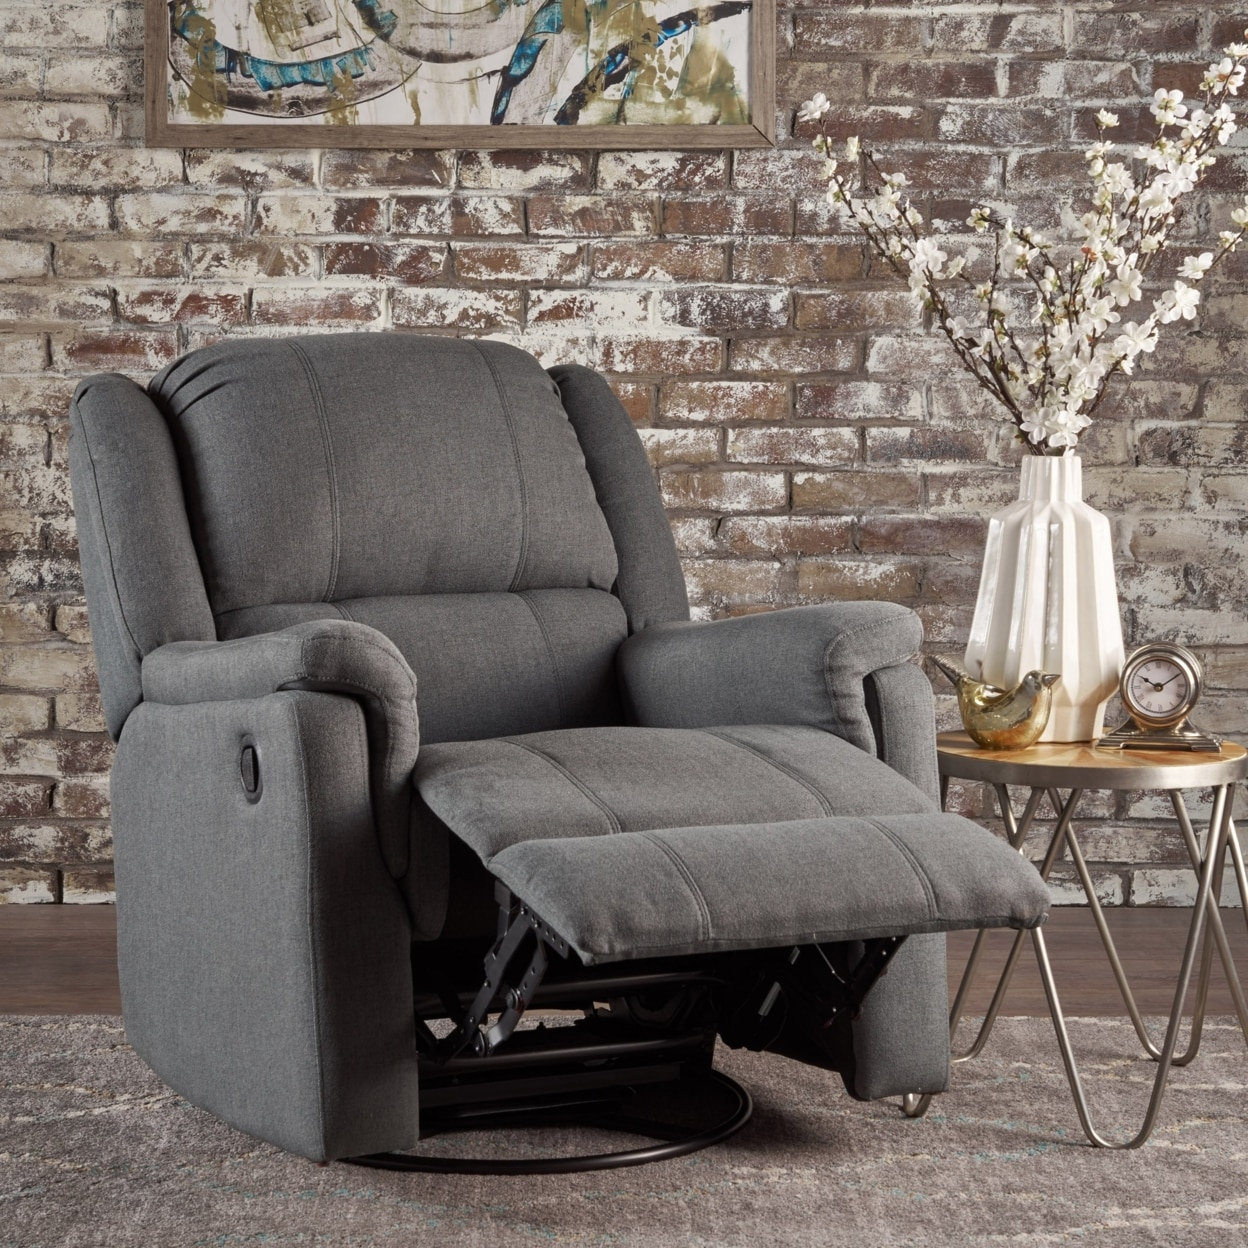 Jemma Tufted Fabric Swivel Gliding Recliner Chair-In Living Room within Decker Ii Fabric Swivel Glider Recliners